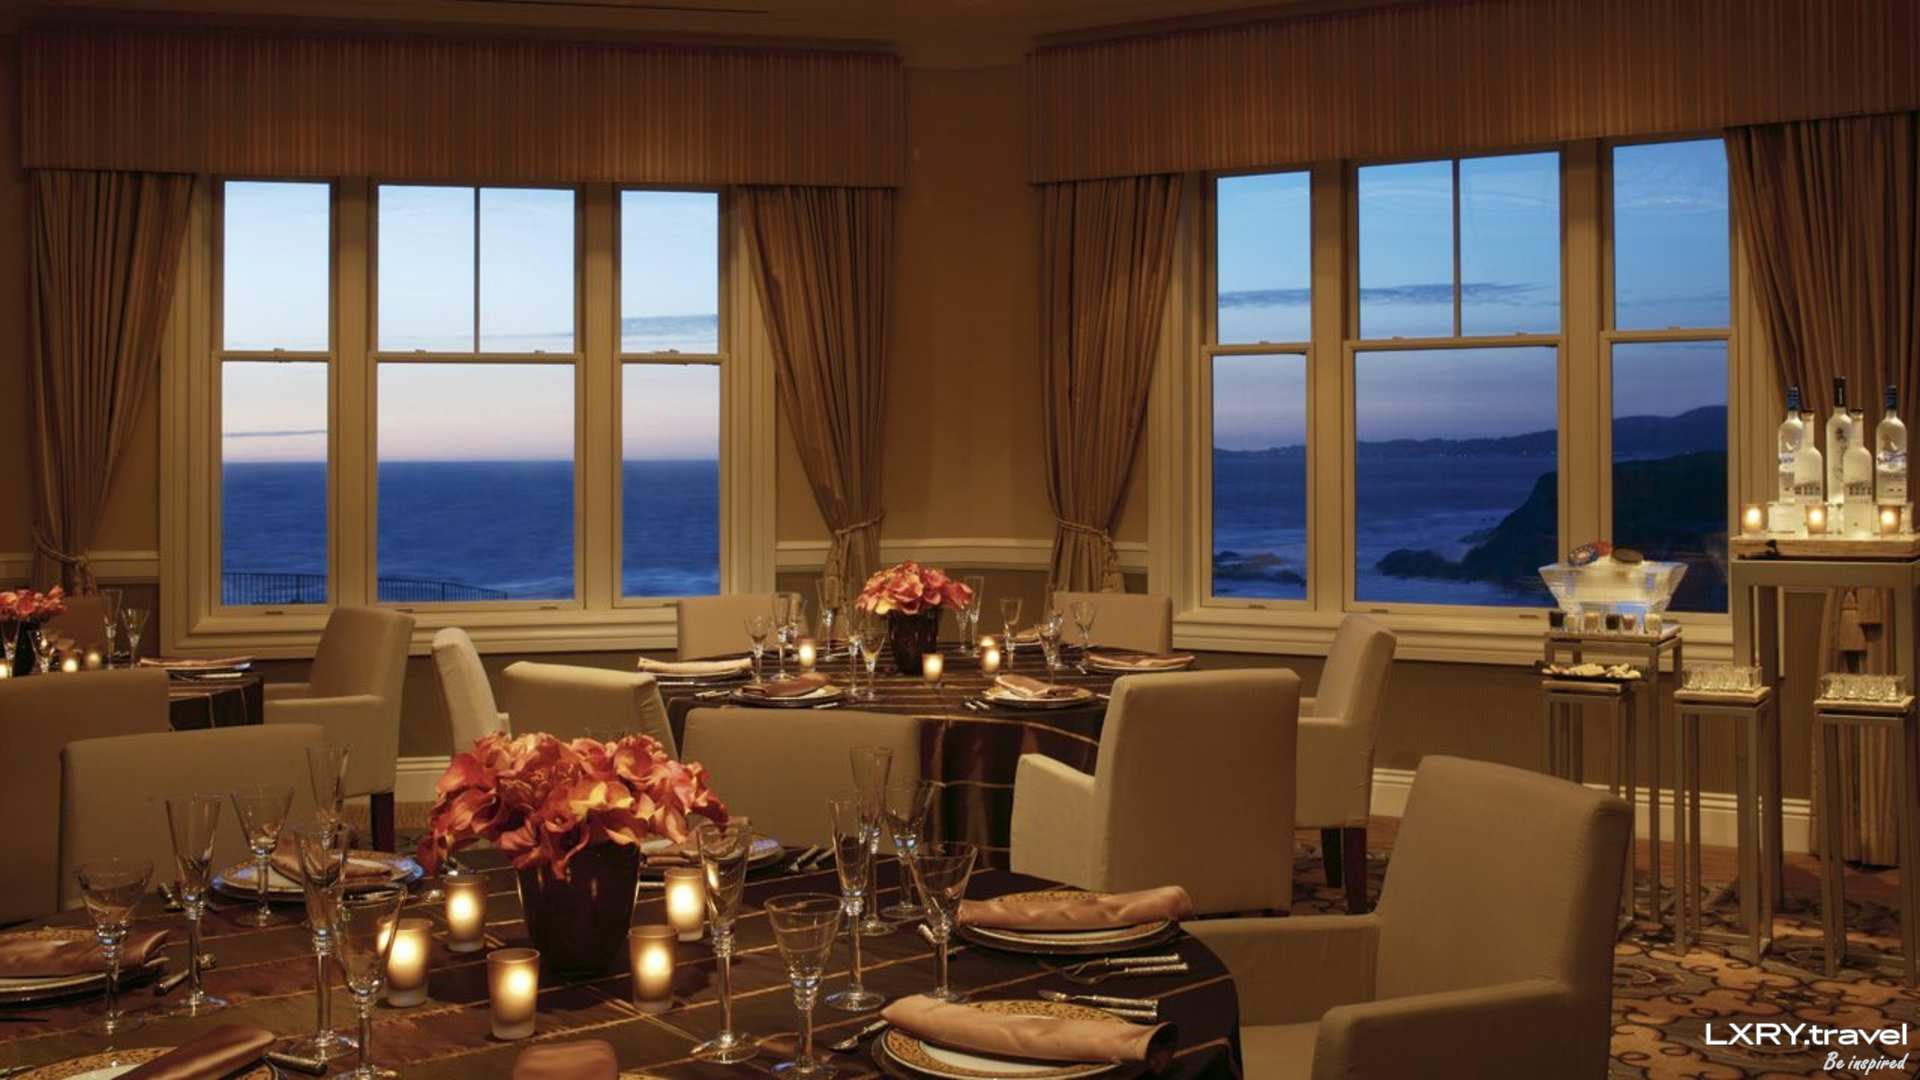 The Ritz-Carlton, Half Moon Bay 13/50